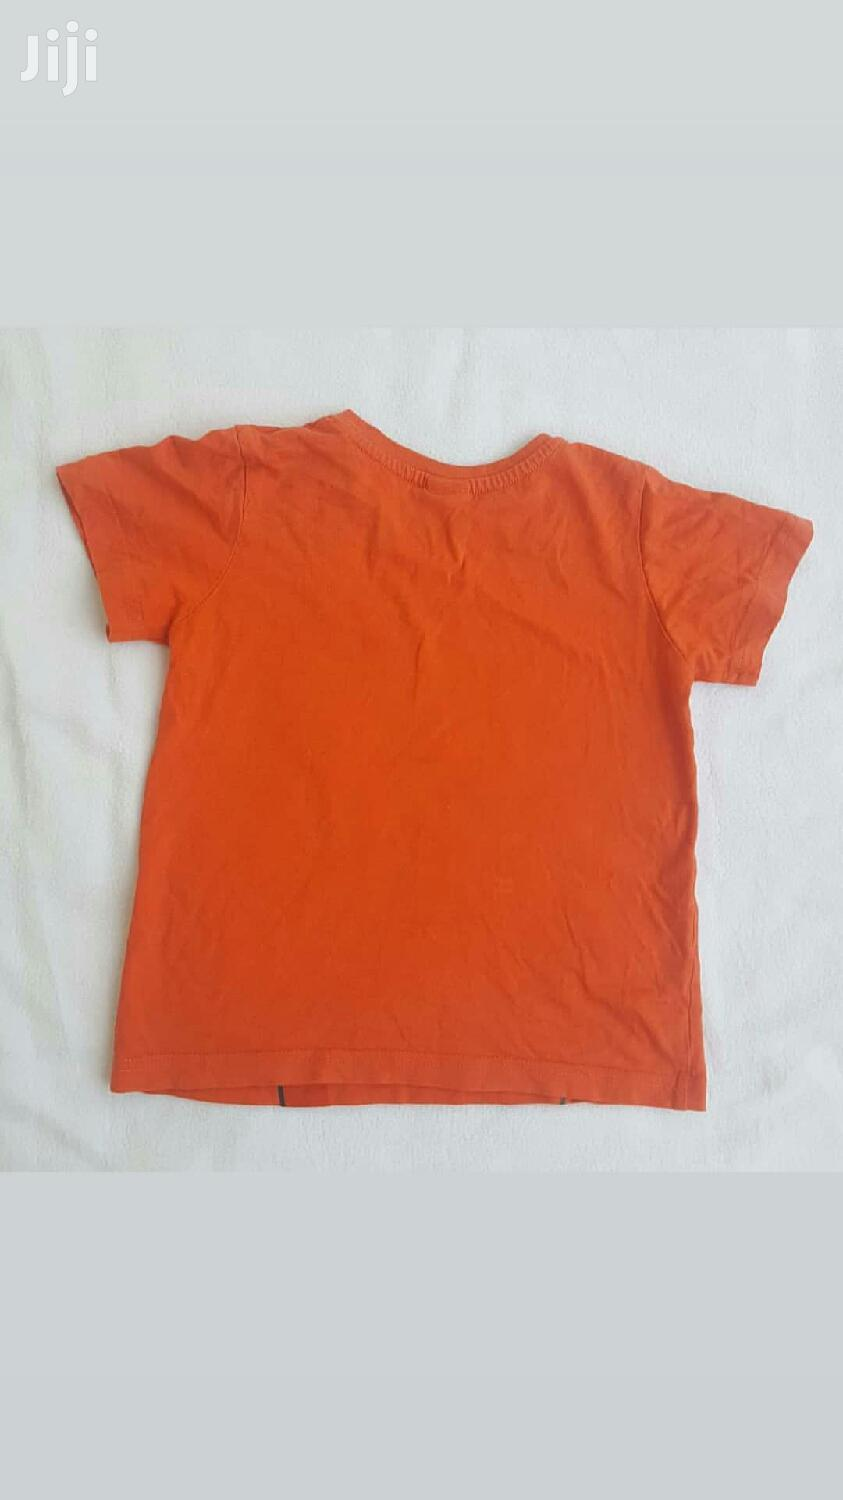 T-Shirts For Boys | Children's Clothing for sale in Ilala, Dar es Salaam, Tanzania